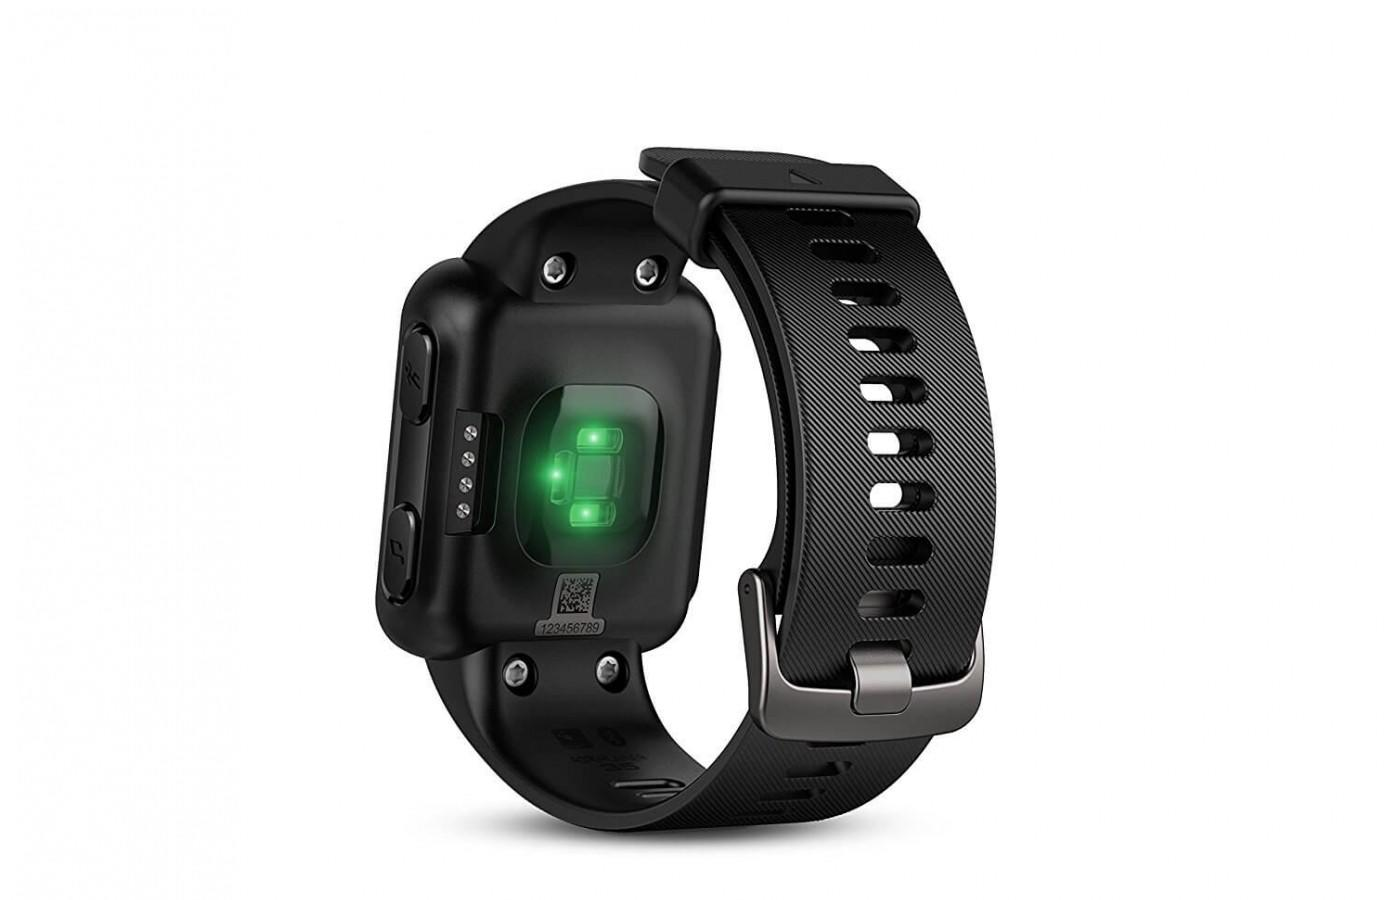 The Garmin Forerunner 35 has a heart rate monitor in its wrist